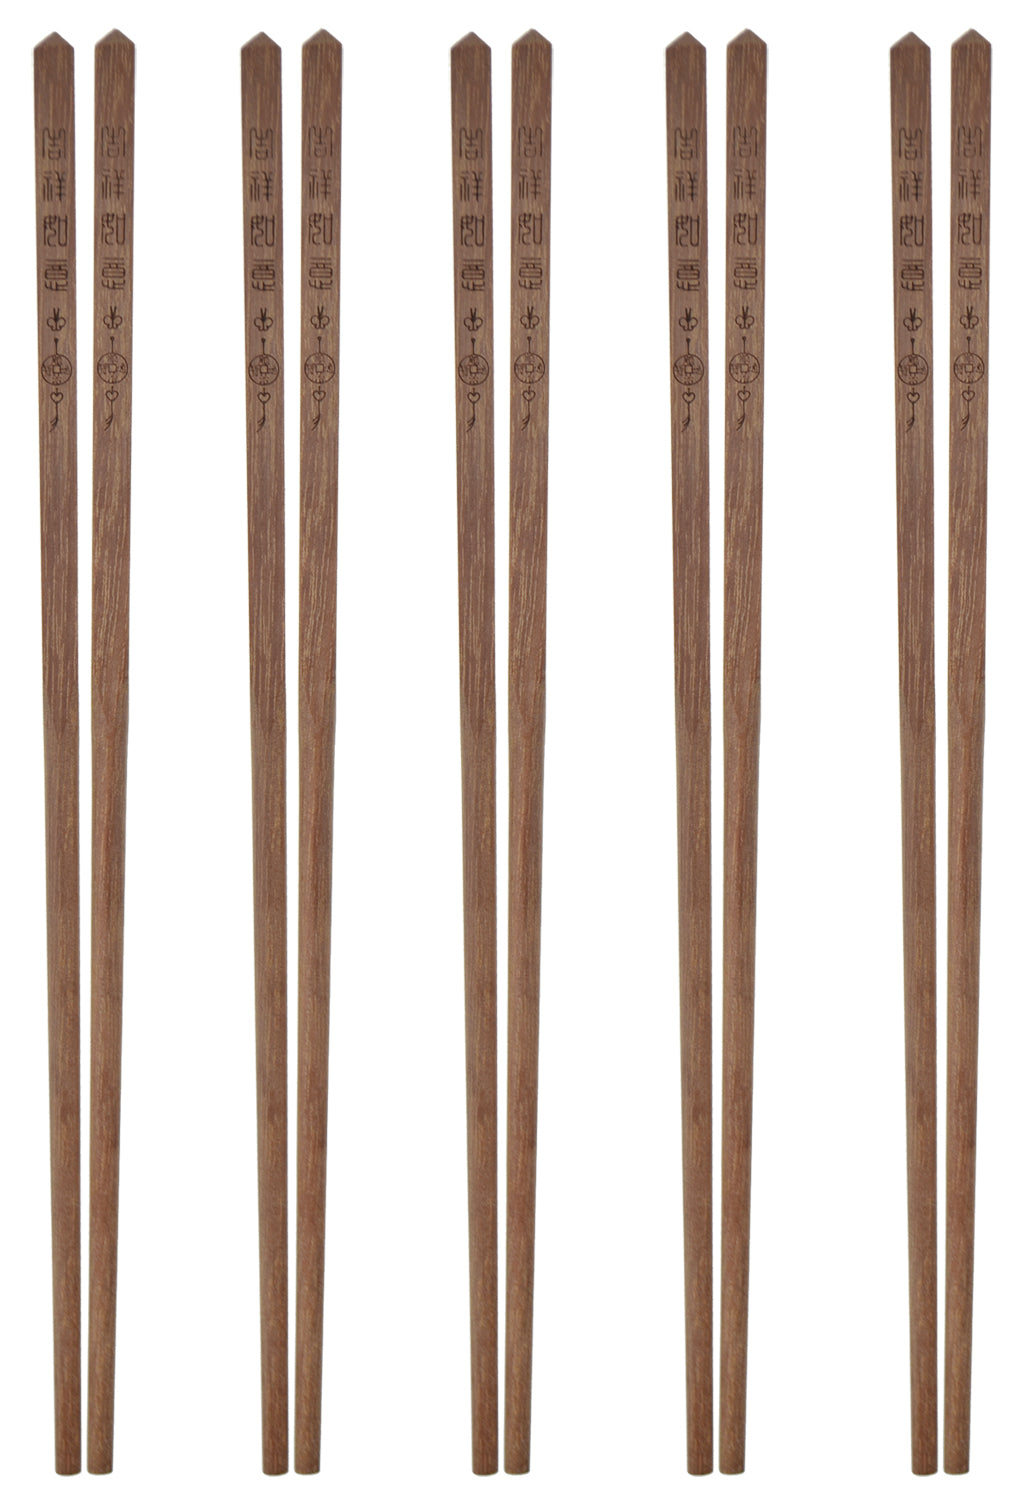 All Natural Solid Sandal Wood with Chinese Characters Chopsticks